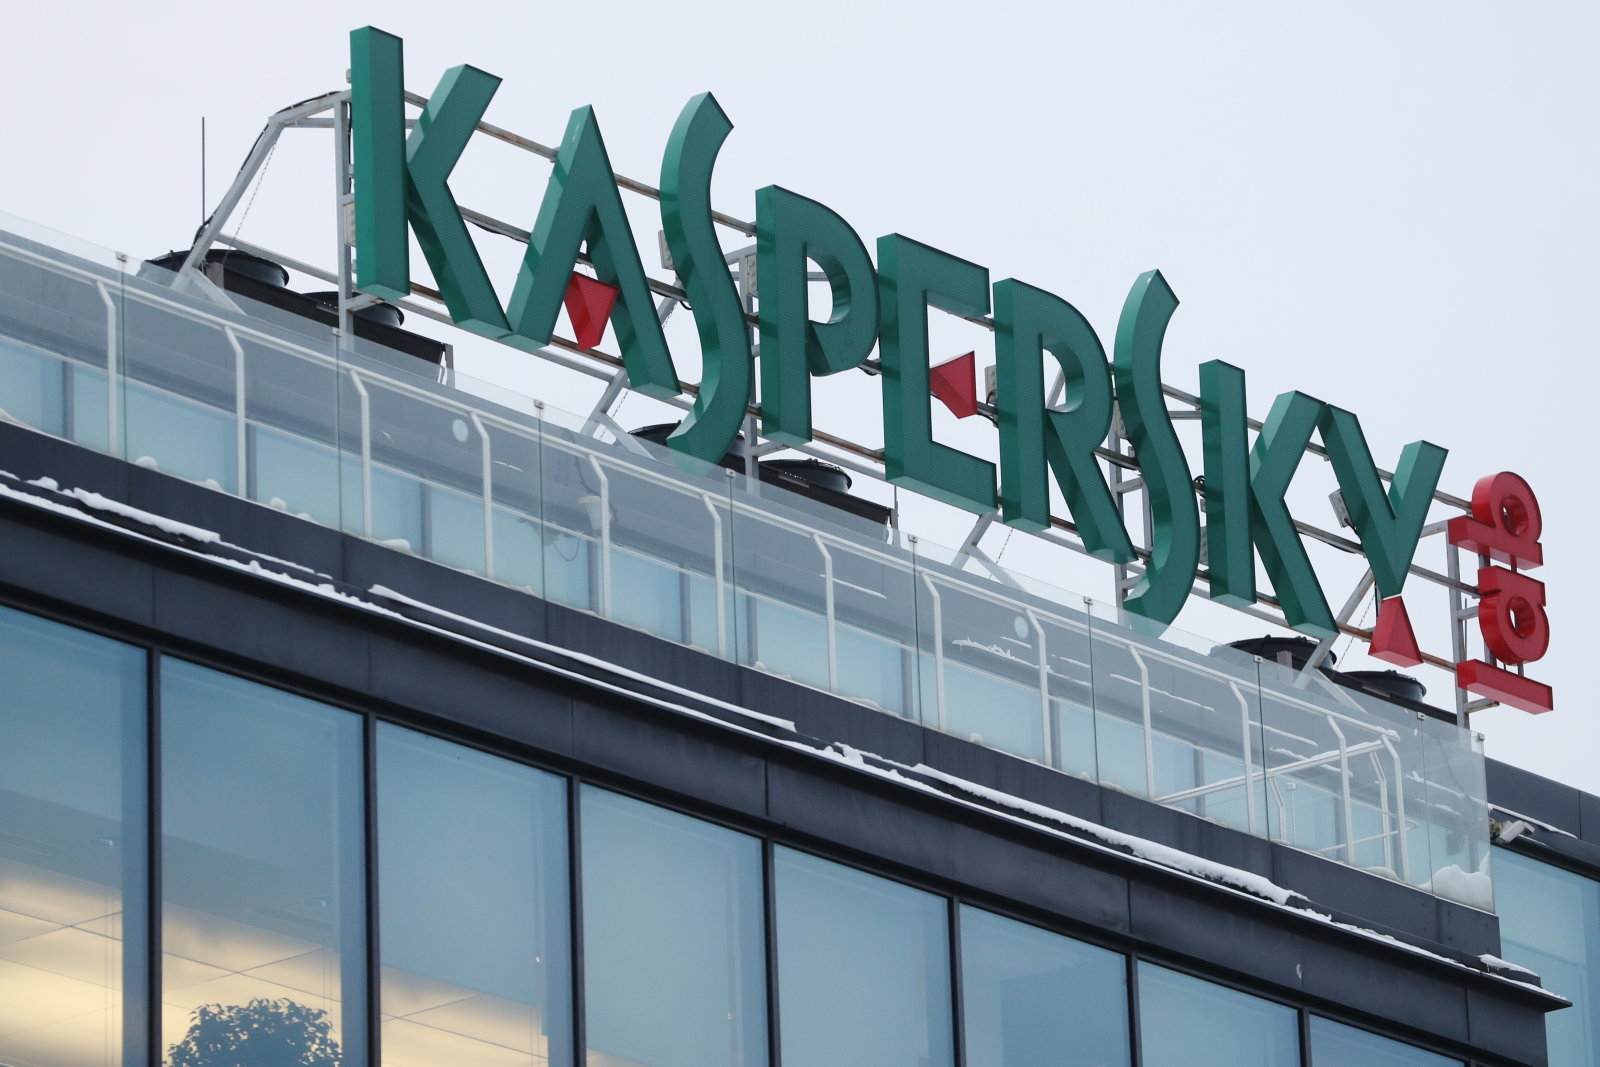 MOSCOW, RUSSIA - FEBRUARY 1, 2017: A view of the Kaspersky Lab headquarters. Kaspersky Lab is a Russian cybersecurity and anti-virus provider founded in 1997 by Eugene Kaspersky, its current CEO. Vyacherslav Prokofyev/TASS (Photo by Vyacheslav Prokofyev\TASS via Getty Images)